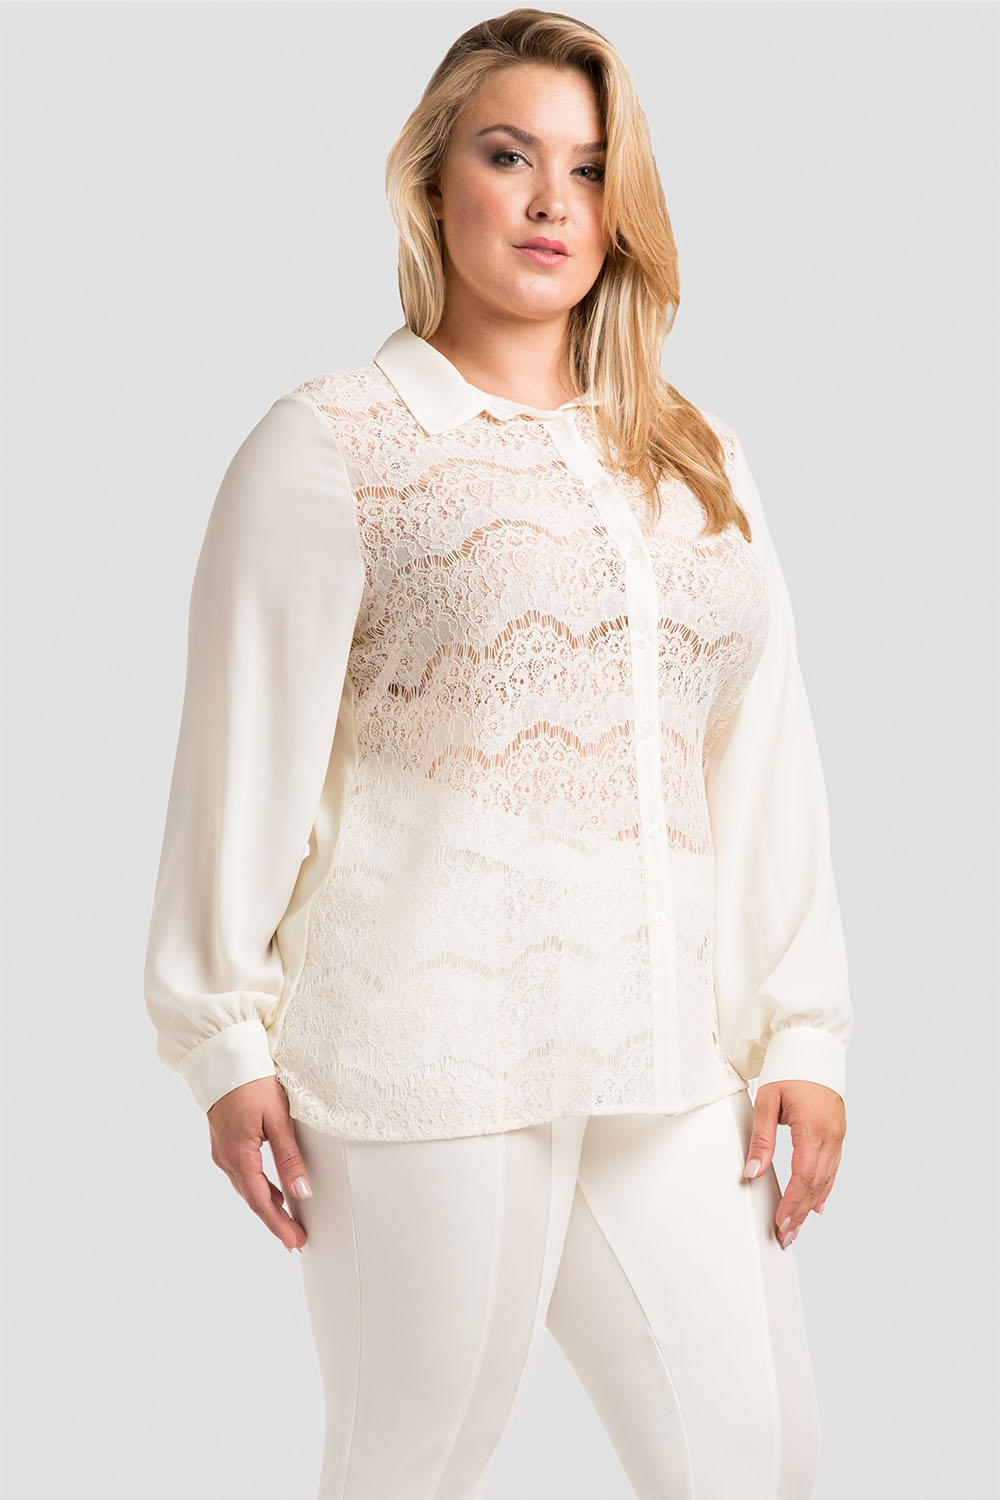 Plus Size Women's Button-Up Collared Shirt White Lace